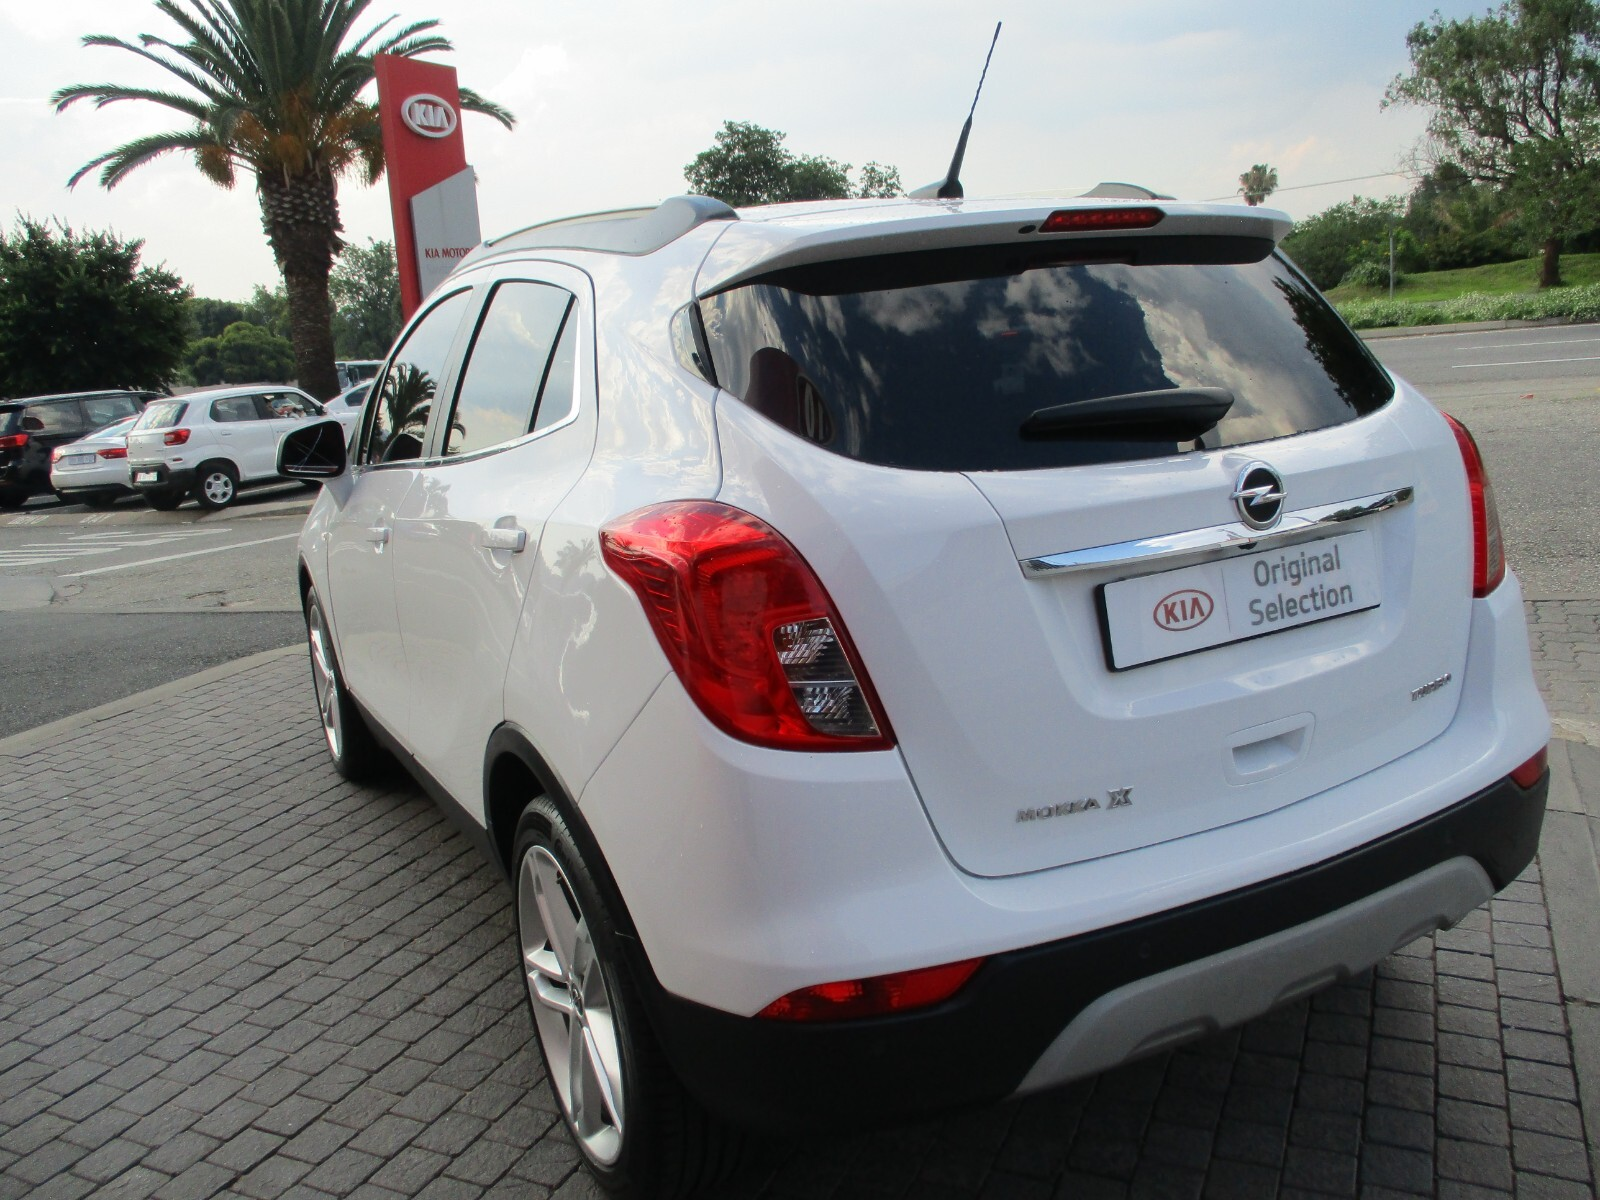 OPEL / X 1.4T COSMO A/T Sandton 4326788